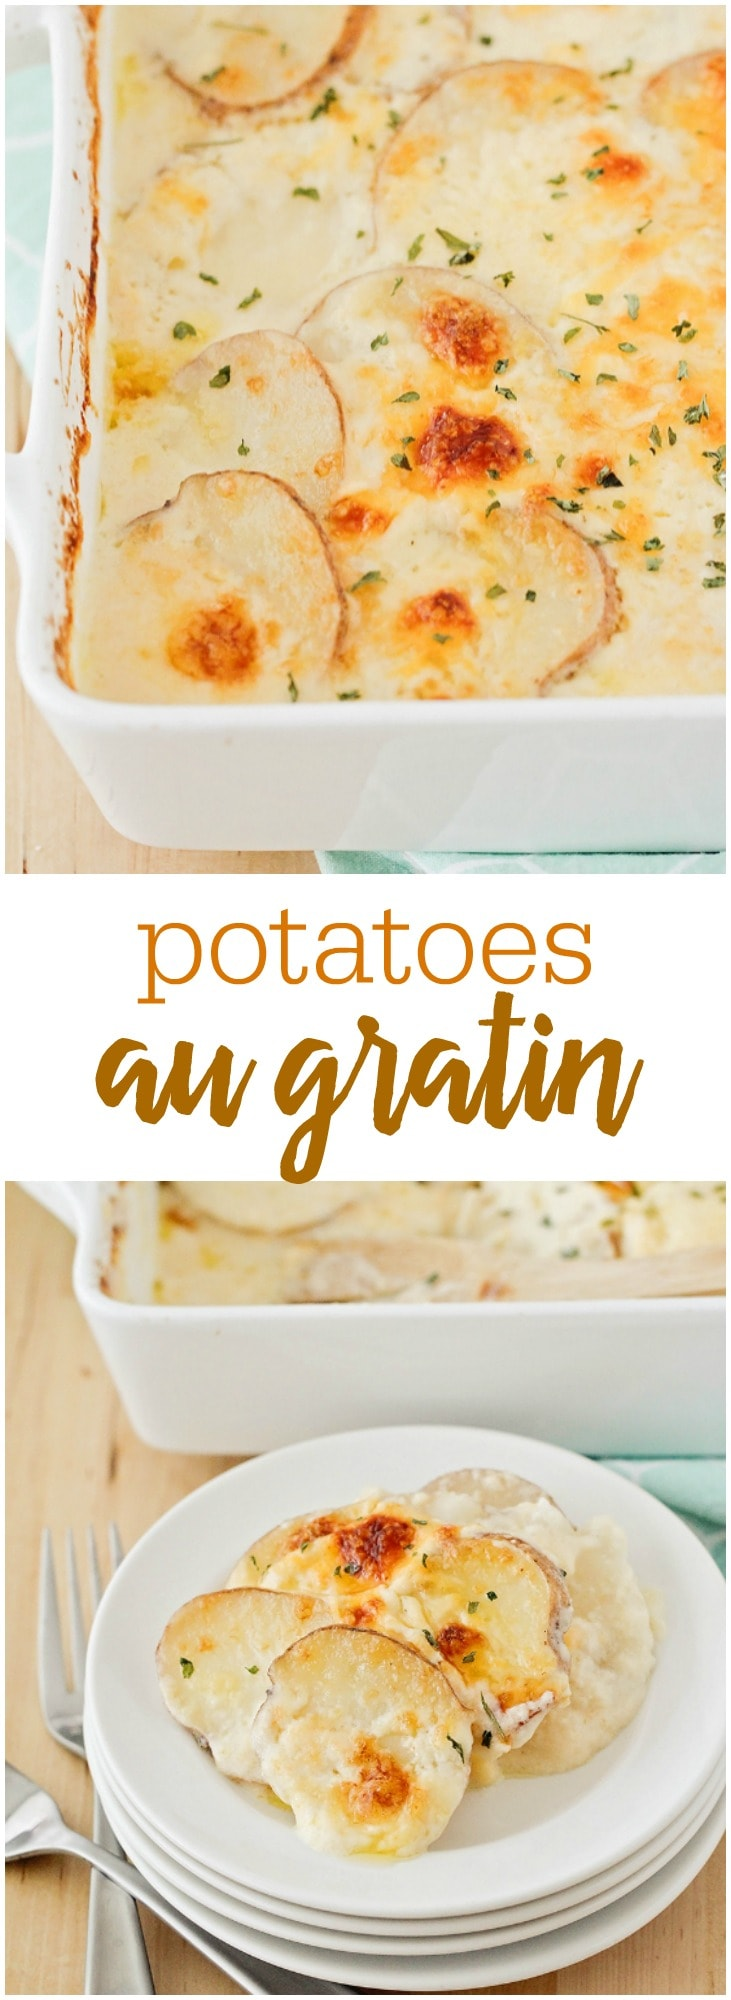 Cheddar & Parmesan Au Gratin Potatoes-the perfect side dish with any meal! They are super easy to make & so cheesy!